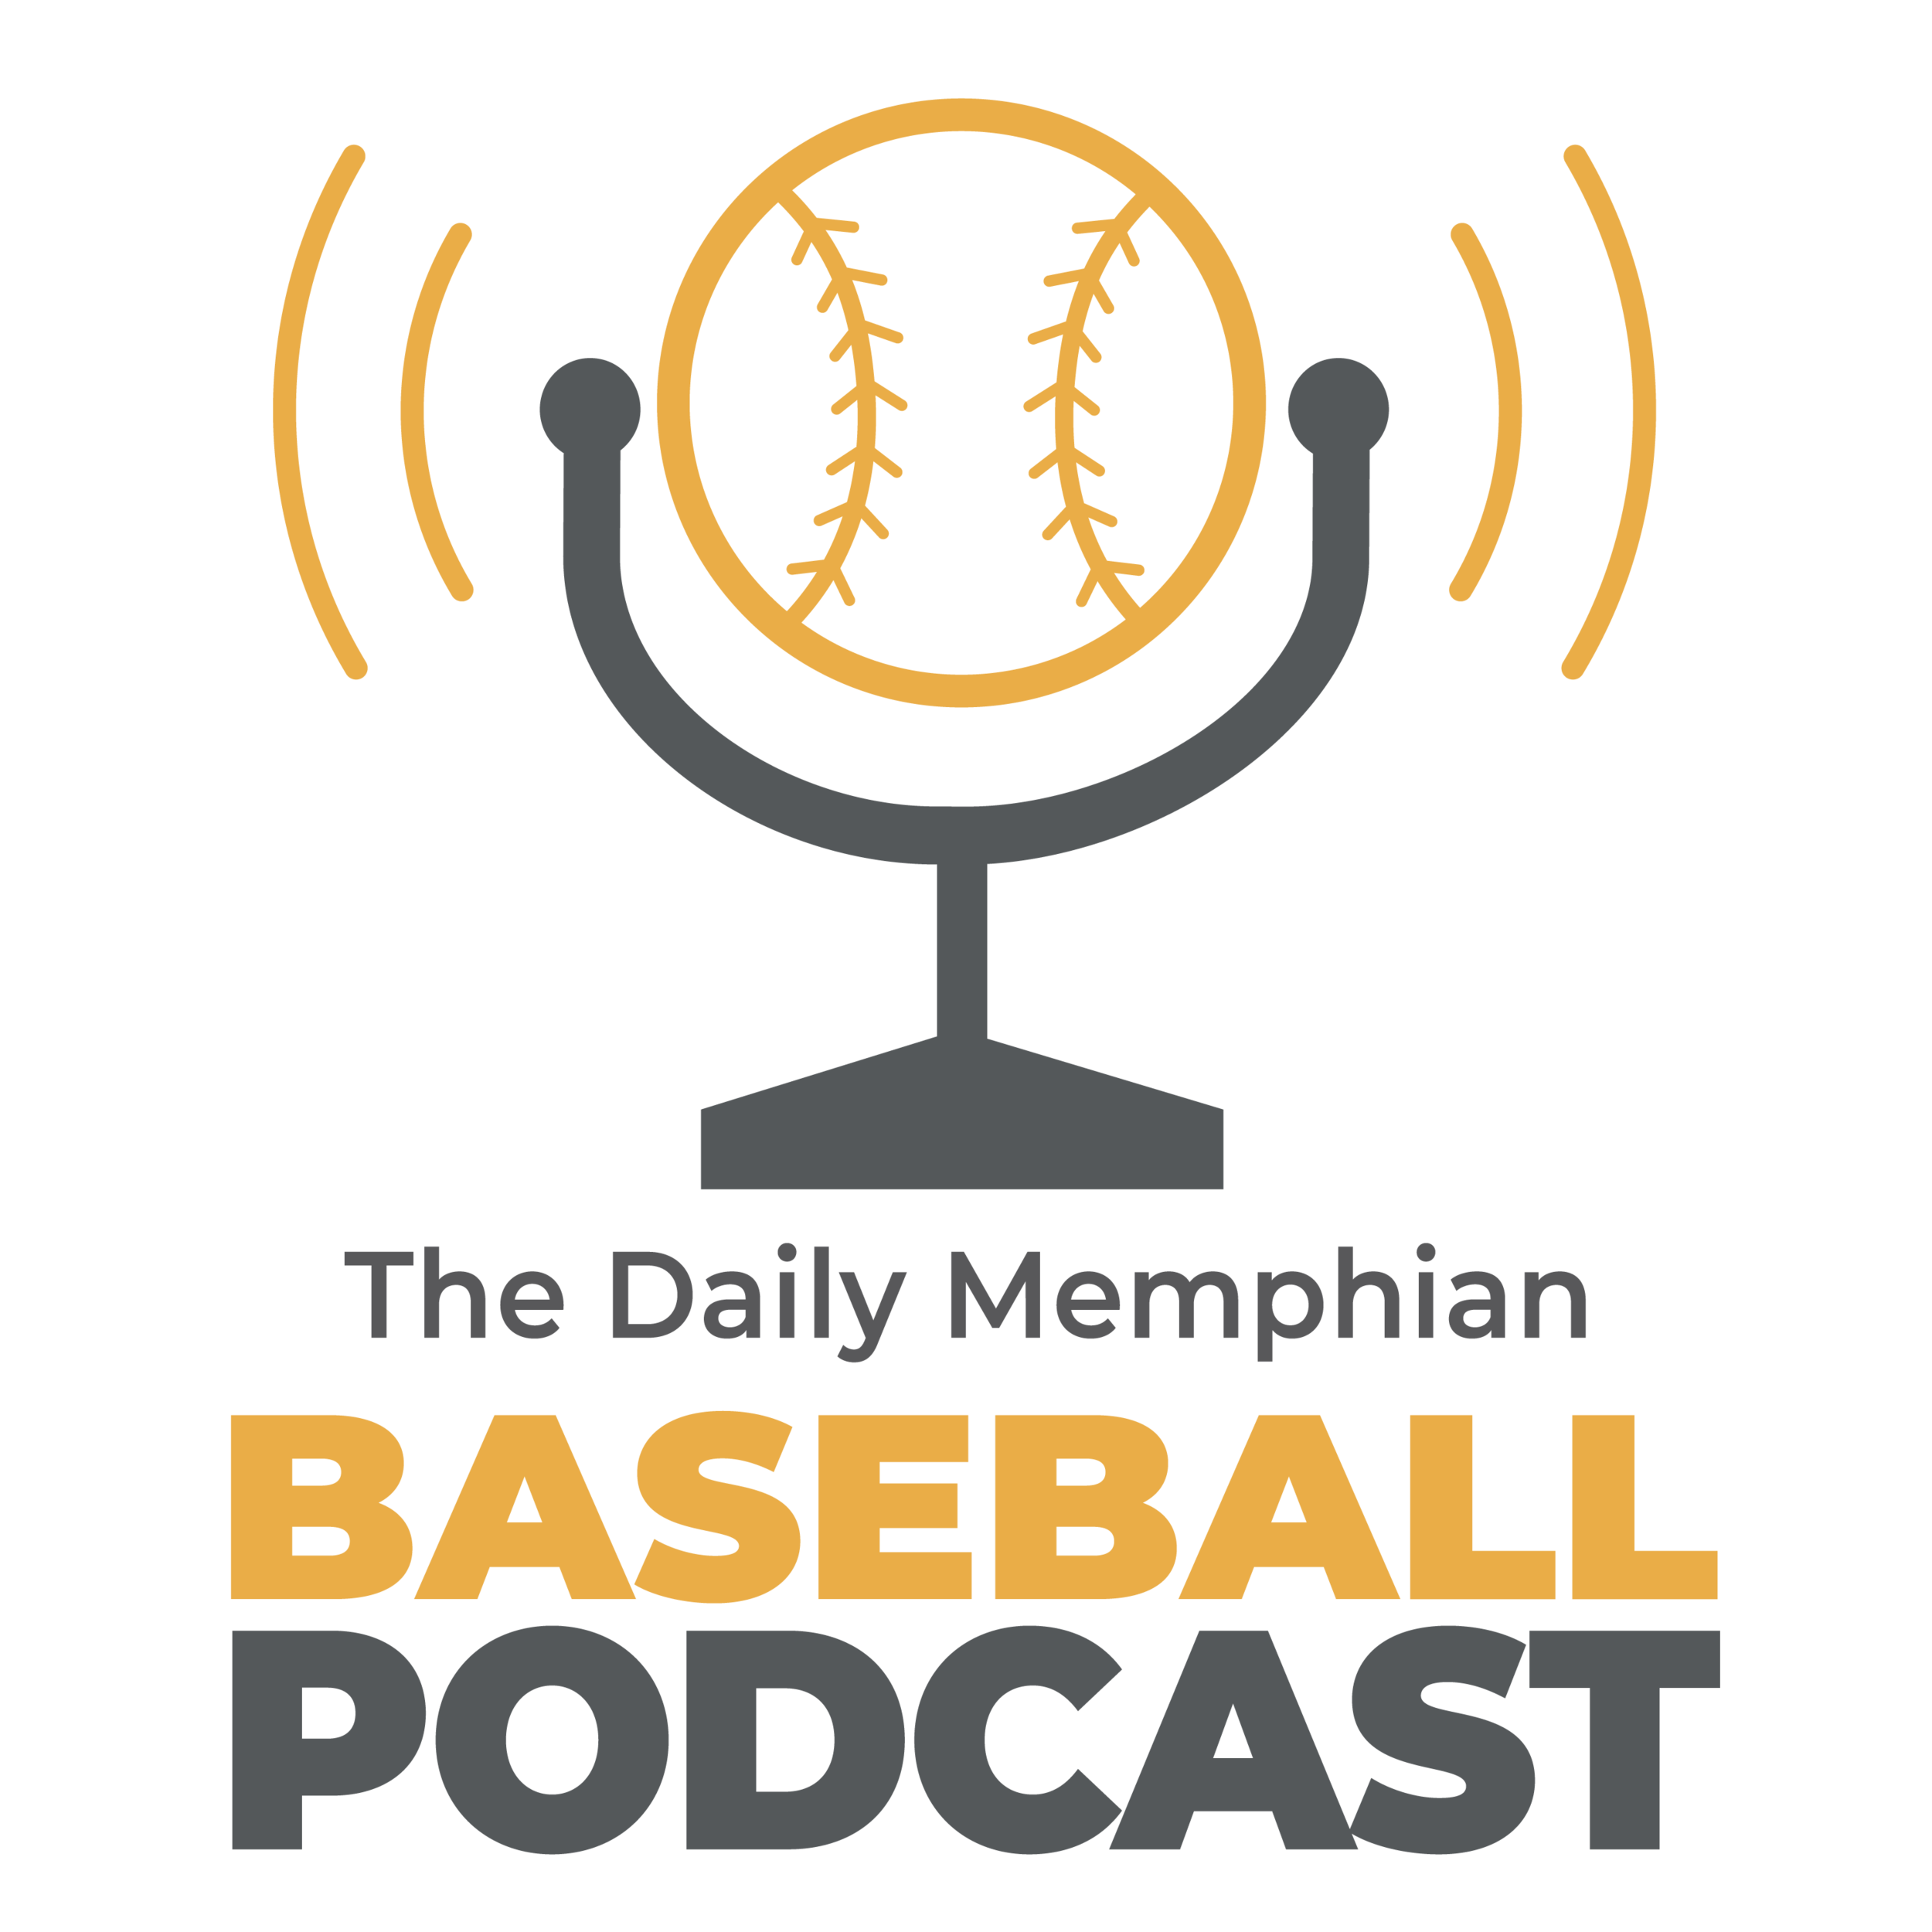 baseball-podcast-logo.png